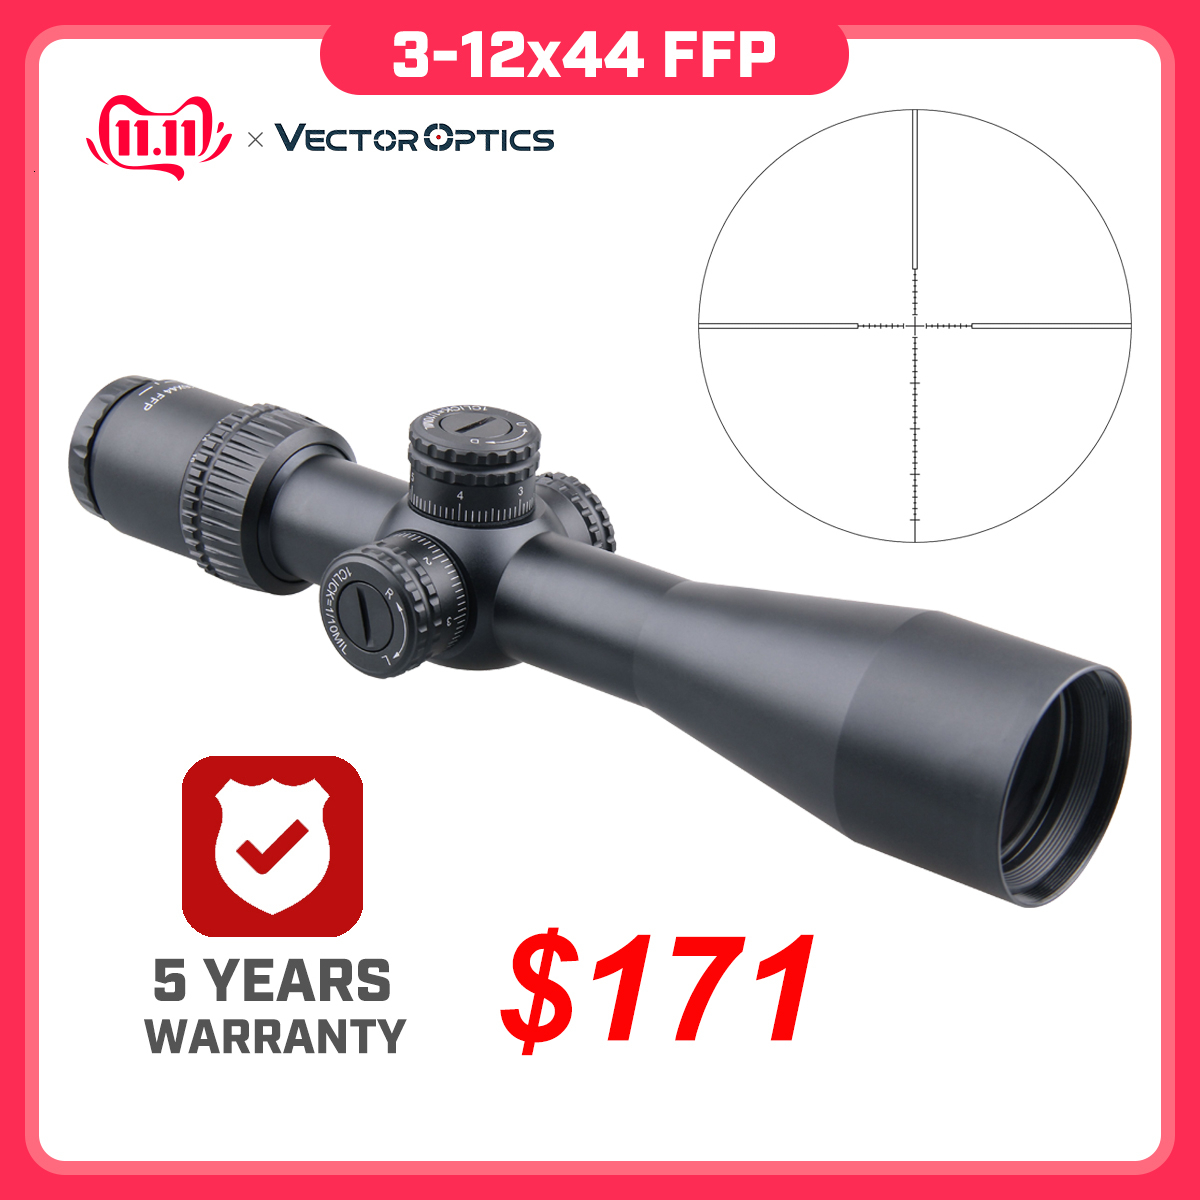 Vector Optics Veyron FFP 3-12x44  Ultra Compact Riflescope Air Rifle Scope First Focal Plane 1/10 MIL .223 7.62 AR15 Air Gun